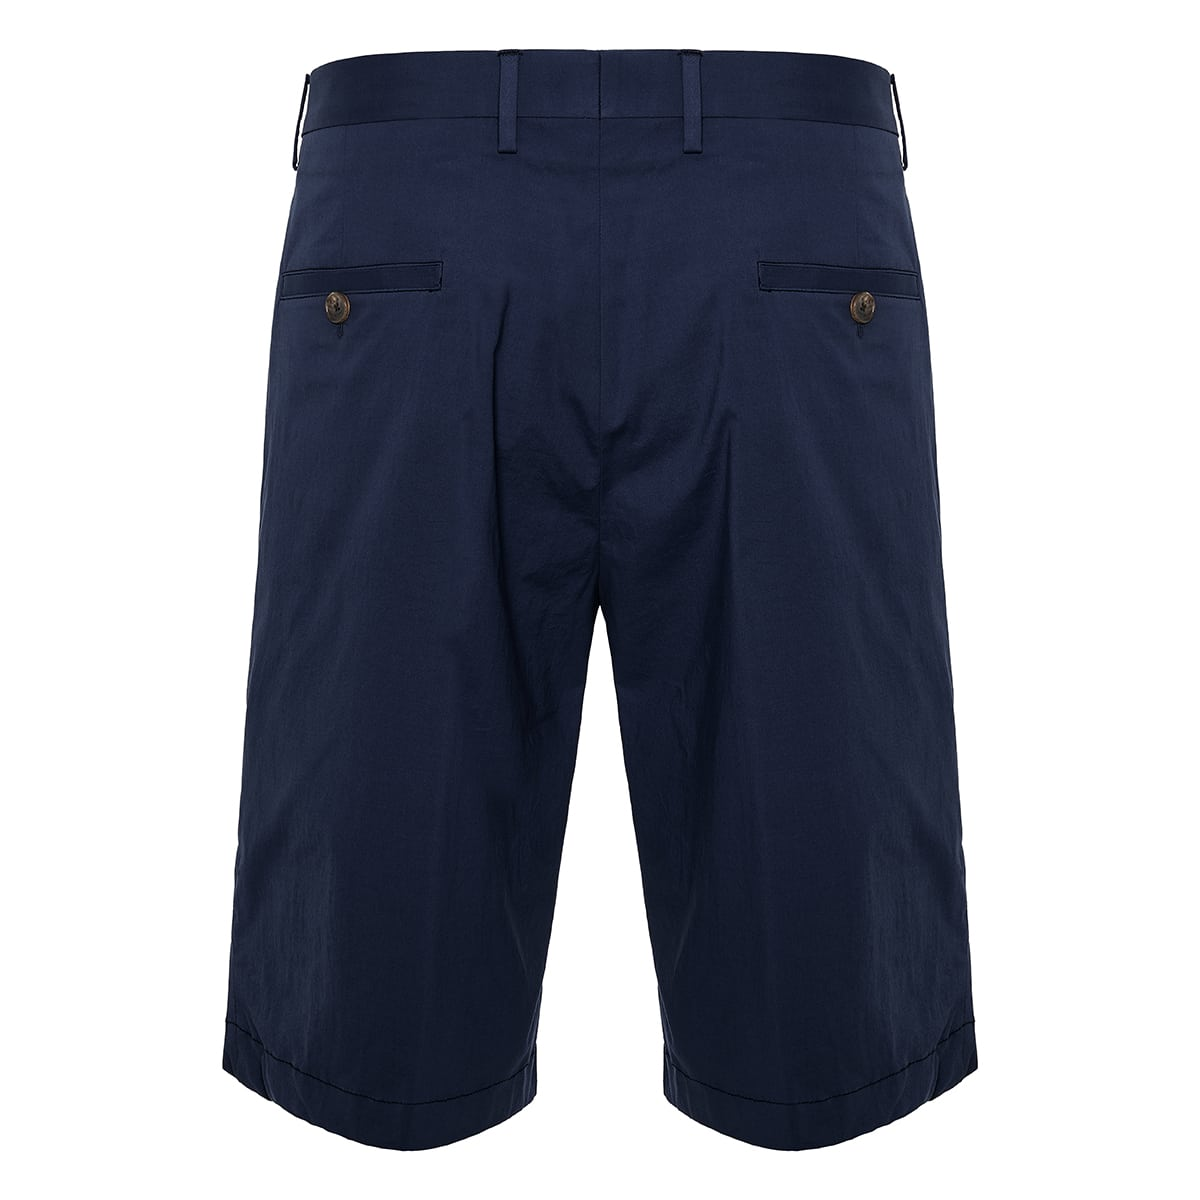 Cotton tailored shorts